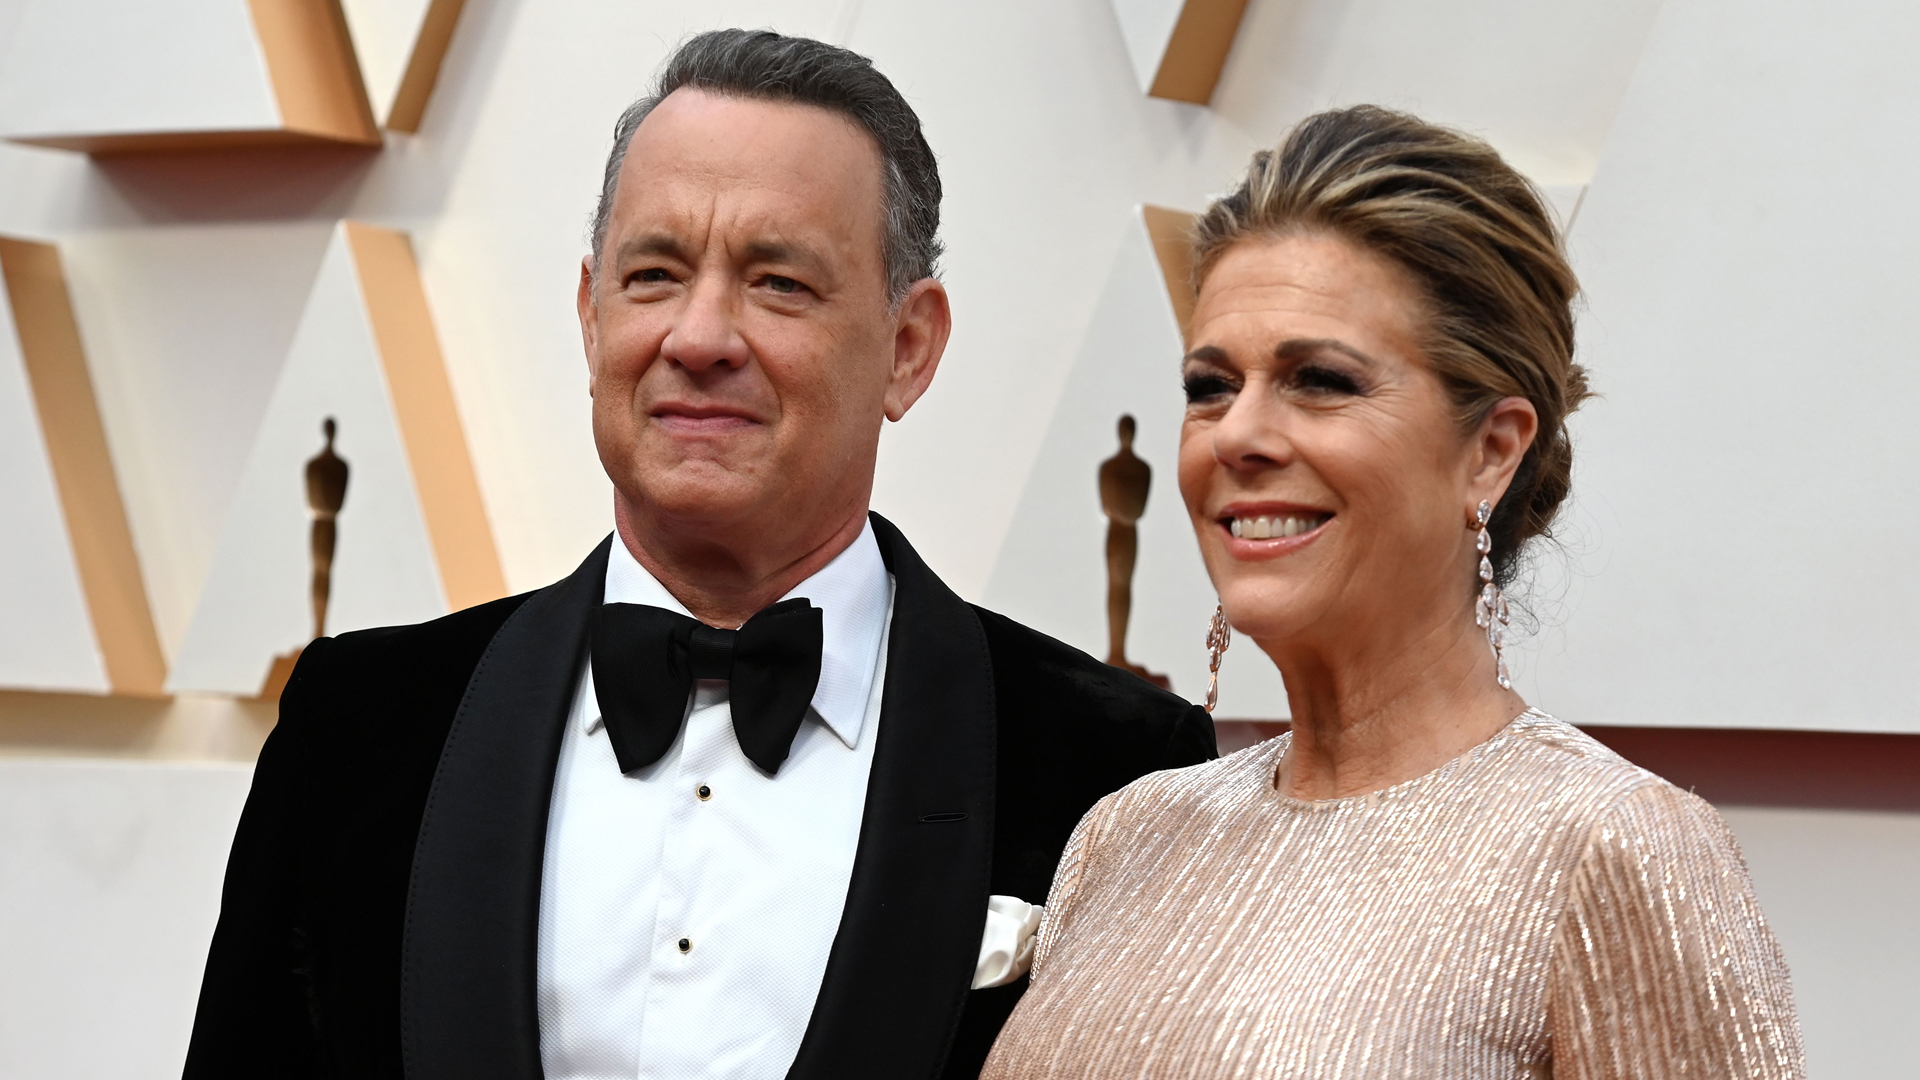 Tom Hanks and Rita Wilson arrive for the 92nd Oscars at the Dolby Theatre in Hollywood, California on Feb. 9, 2020. (ROBYN BECK/AFP via Getty Images)